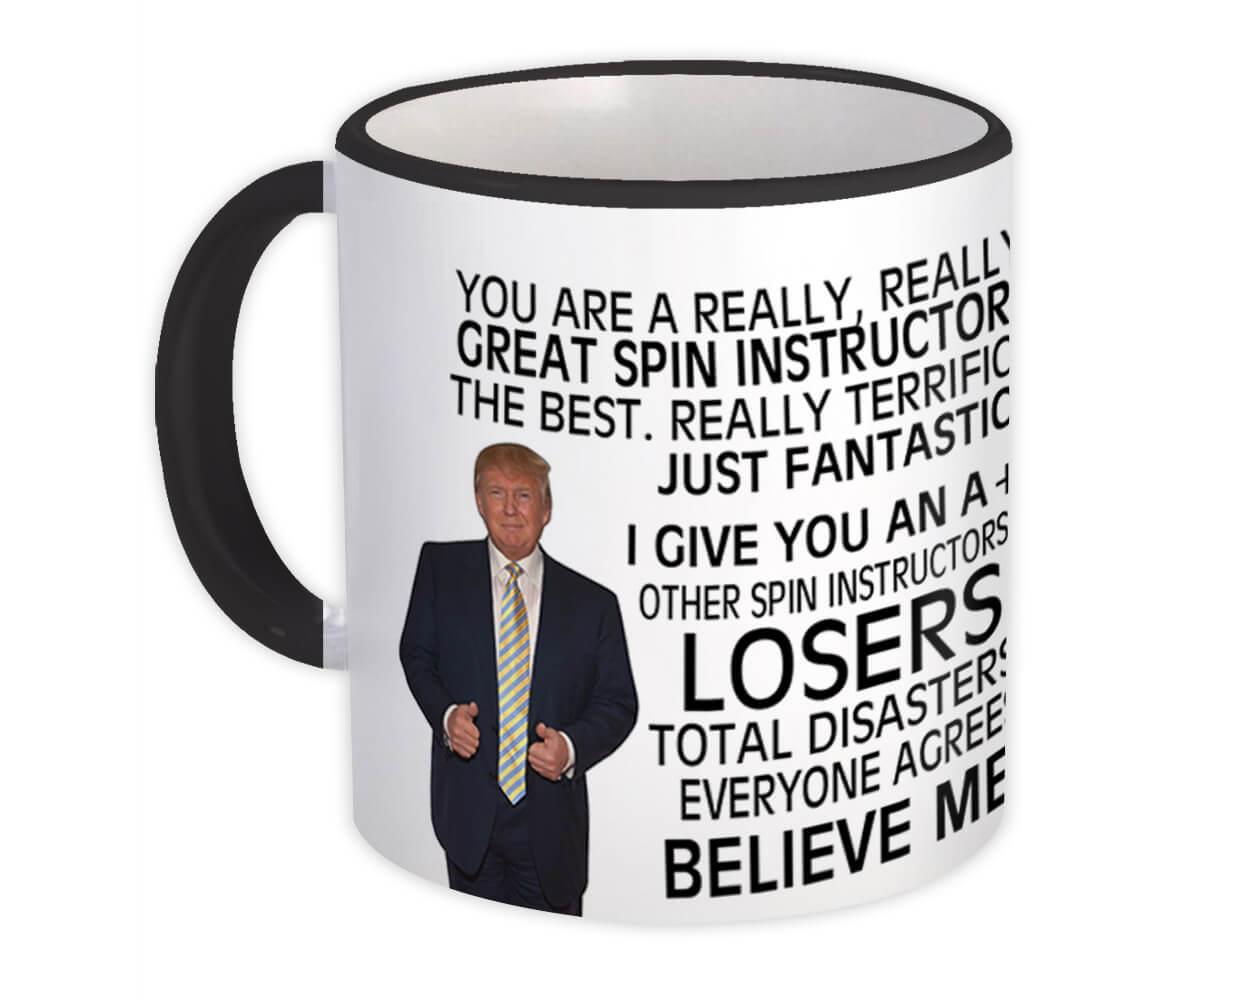 Gift for Spin Instructor : Gift Mug Donald Trump Great Spin Instructor Funny Christmas